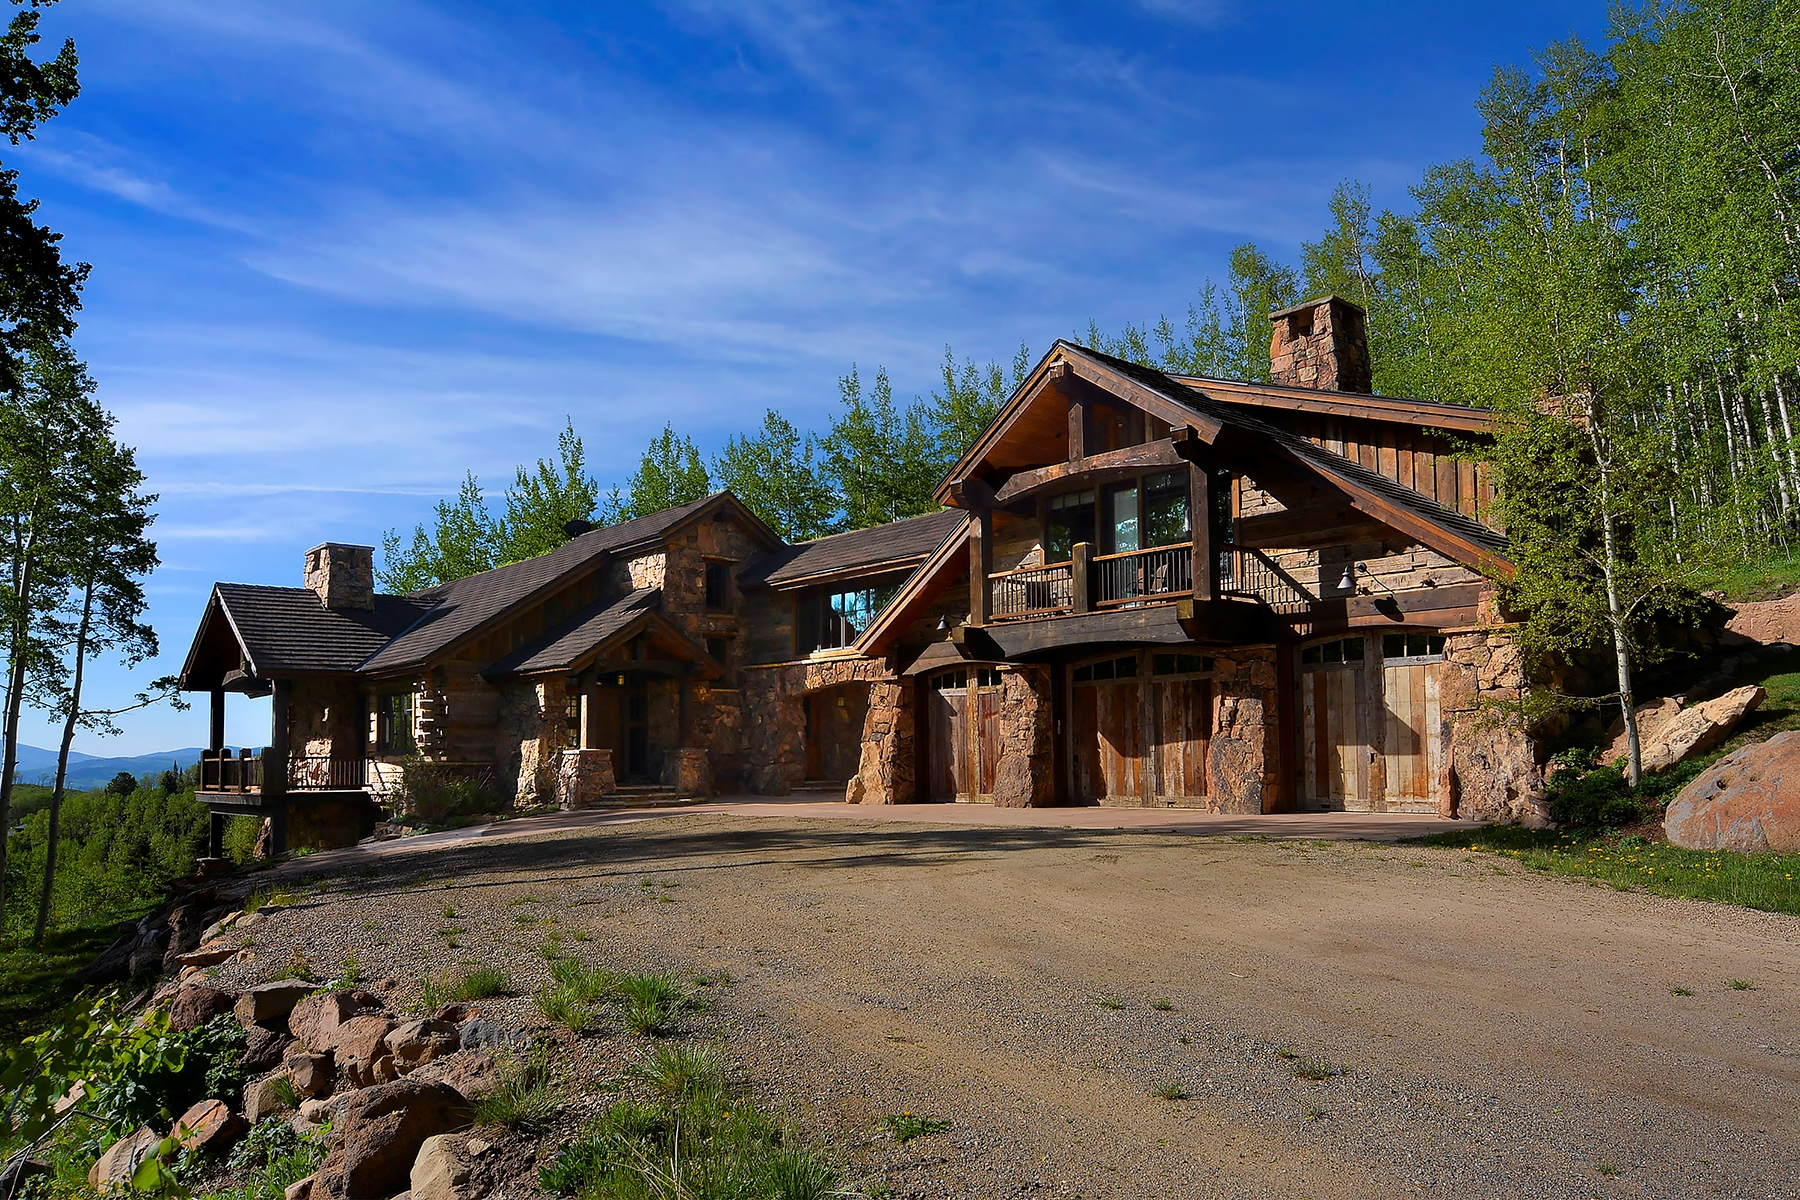 Casa Unifamiliar por un Venta en Spectacular Home with Privacy 1515 Red Mountain Ranch Road, Crested Butte, Colorado, 81224 Estados Unidos